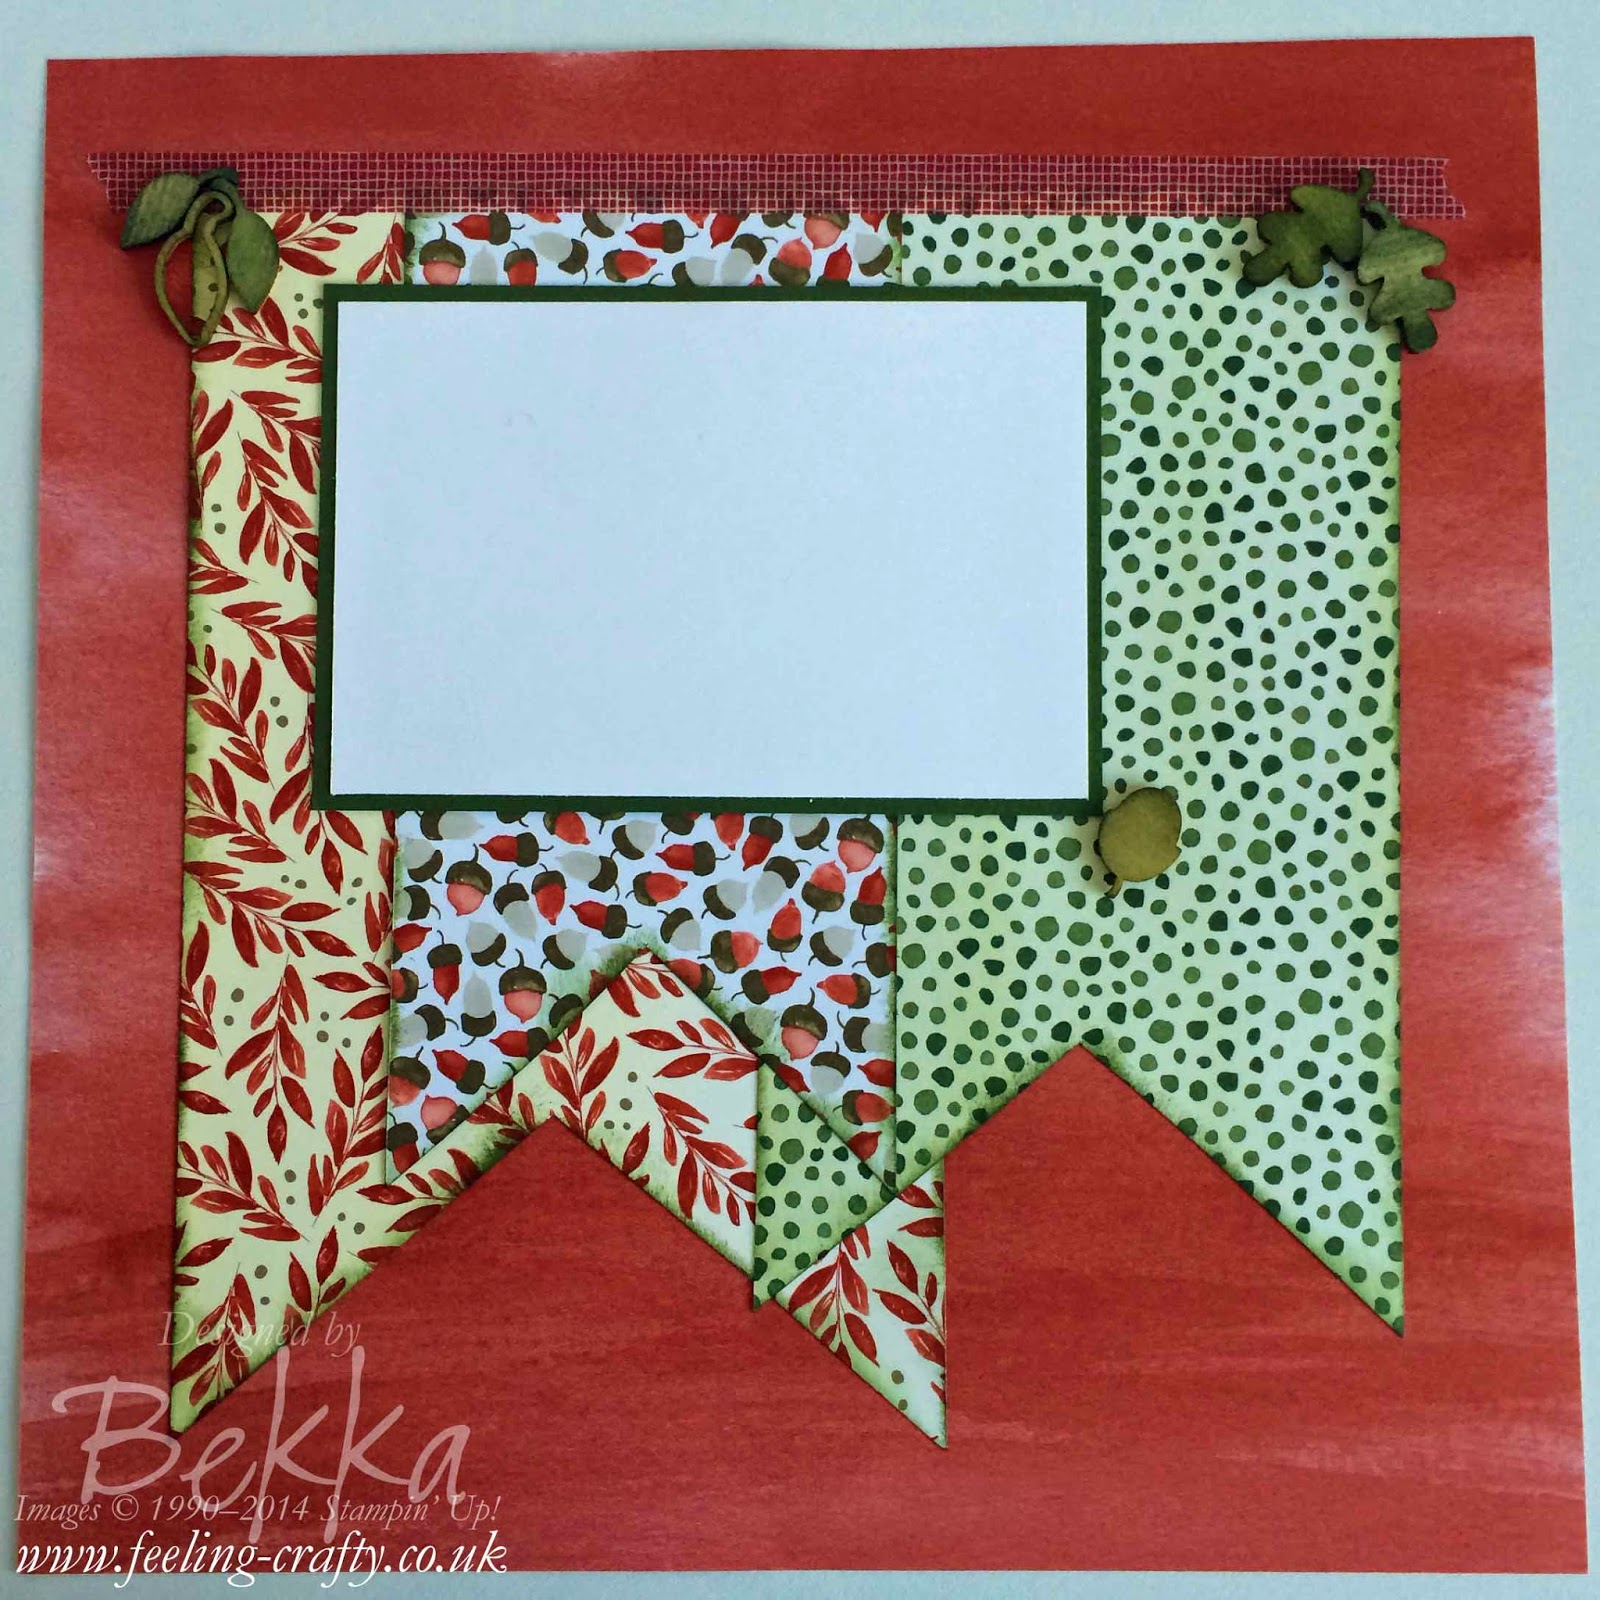 Autumn Scrapbook Page by Stampin' Up! UK Independent Demonstrator Bekka Prideaux - check out her blog